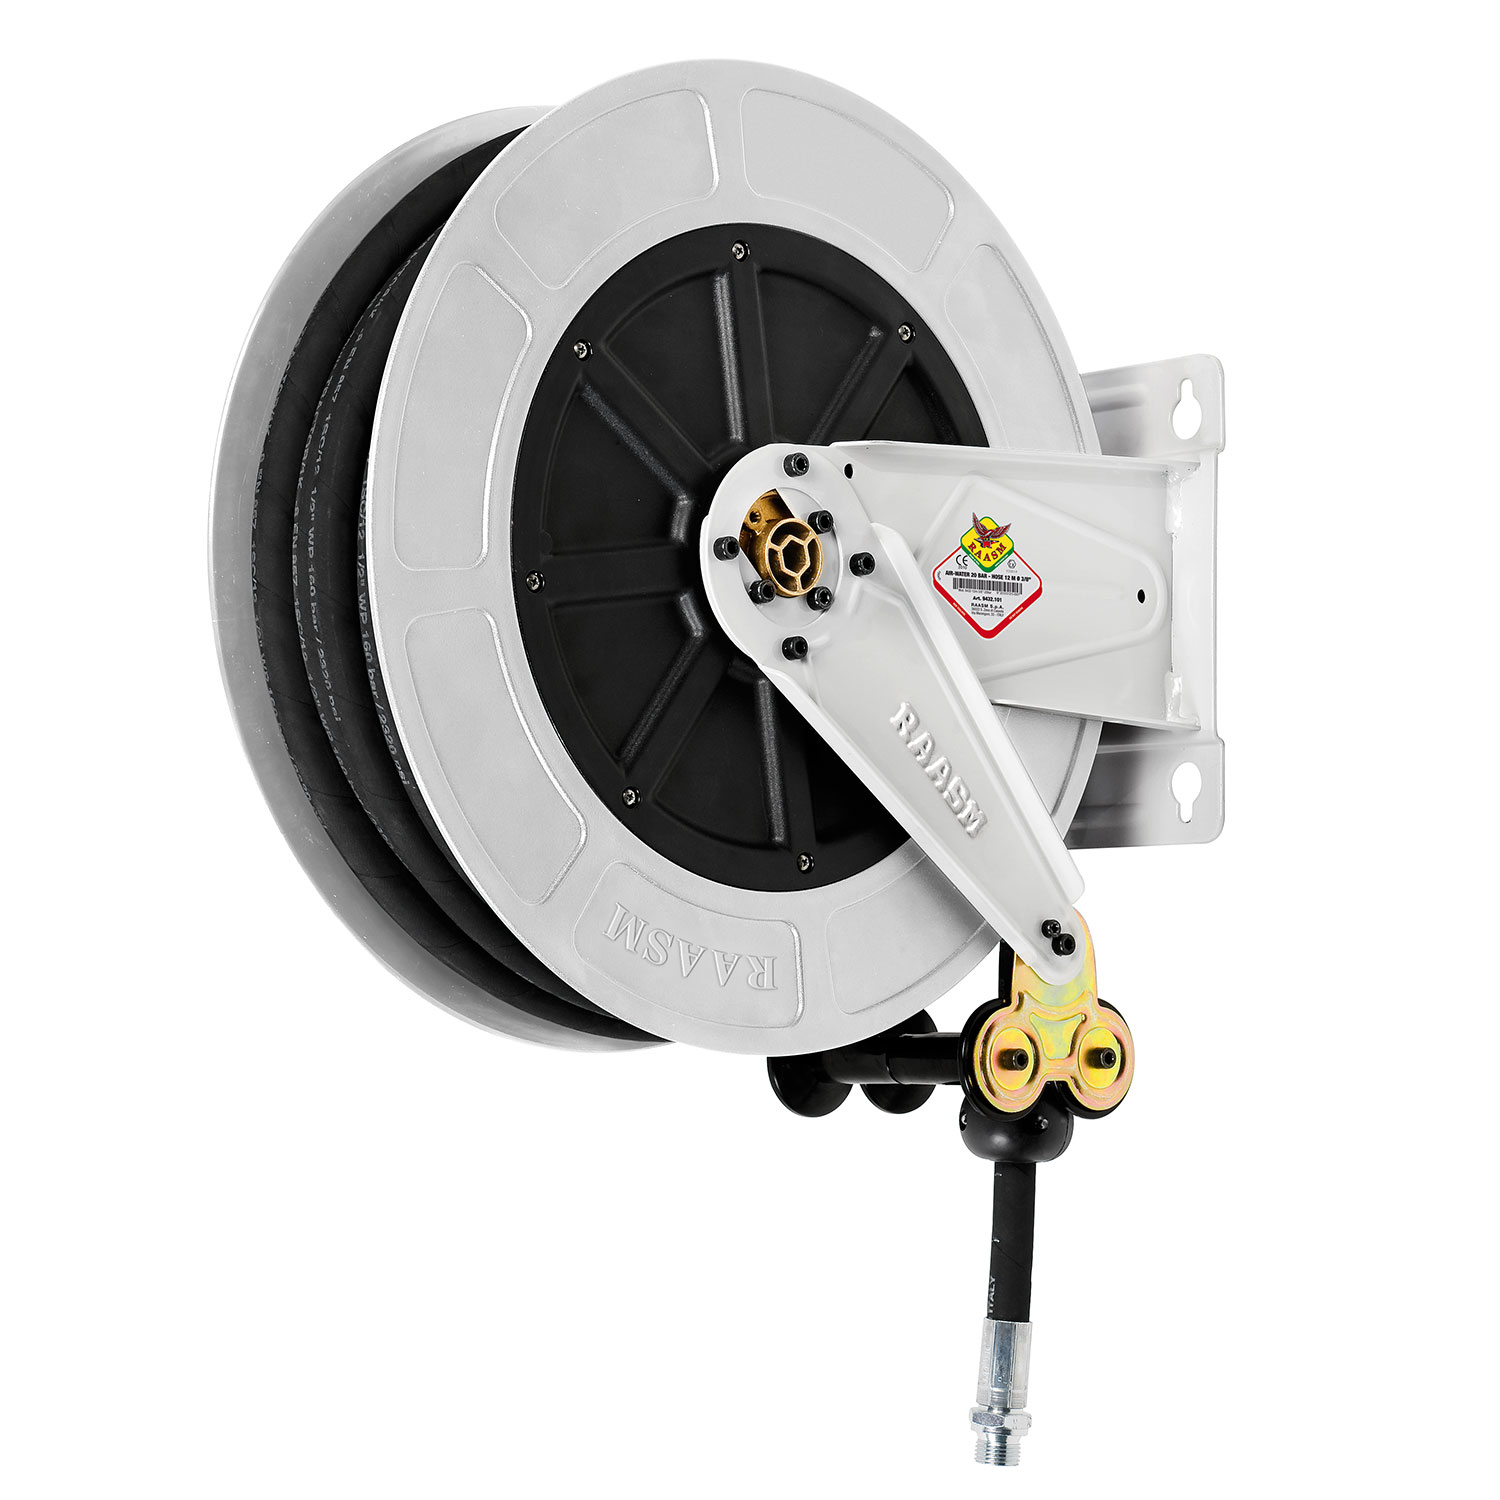 "8430.101 - 430 Series, 12m x 3/8"" Open Air & Water Hose Reel"